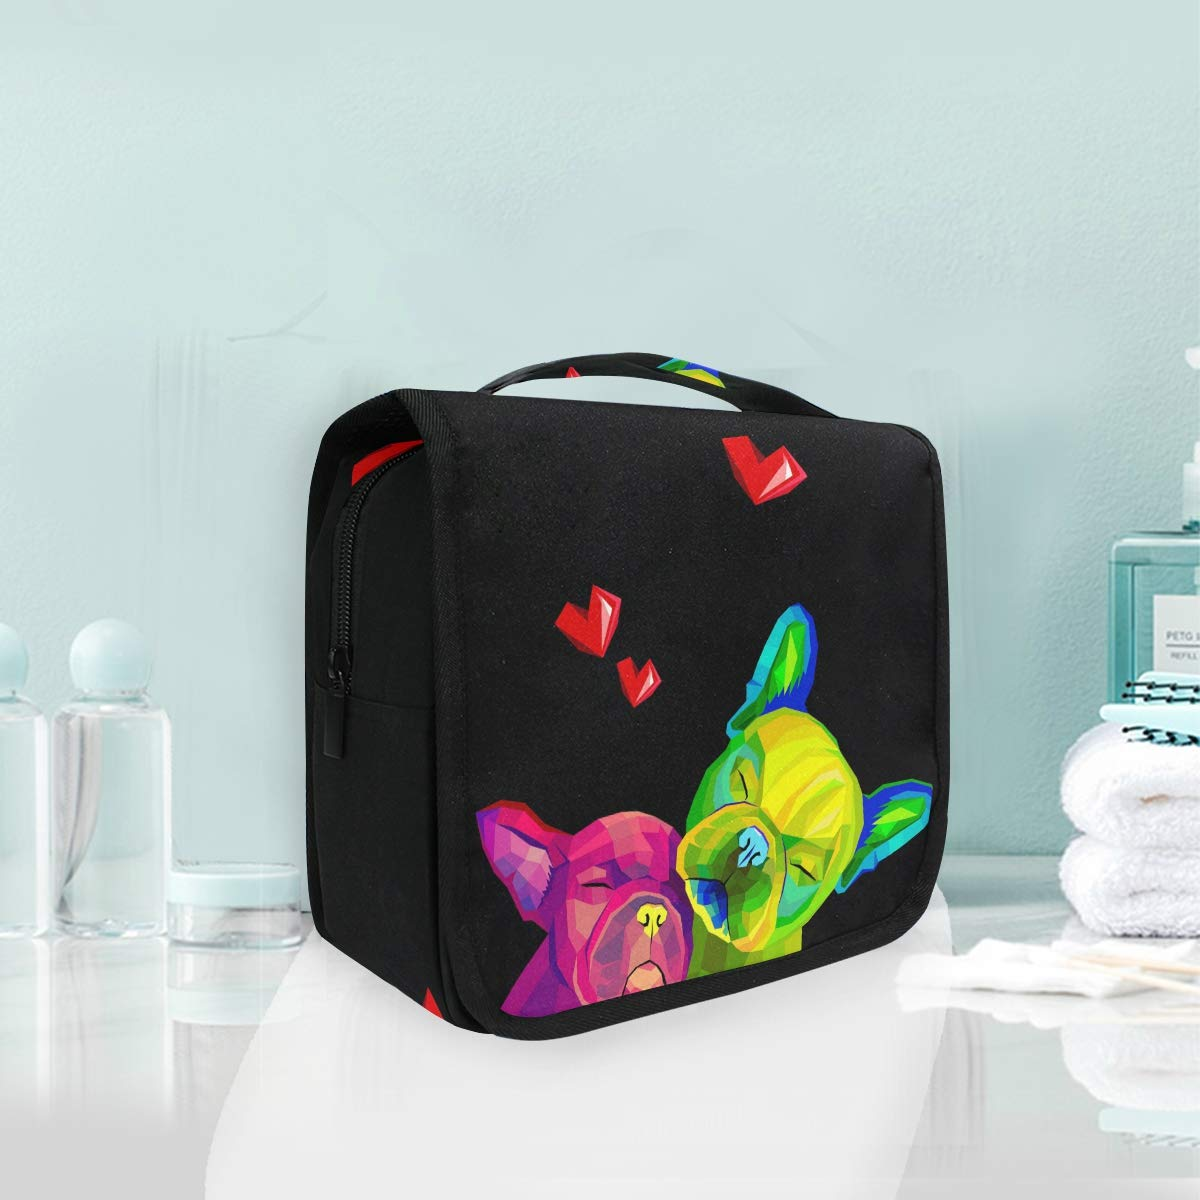 Hanging Toiletry Bag Dog Portable Cosmetic Makeup Travel Organizer for Men & Women with Sturdy Hook